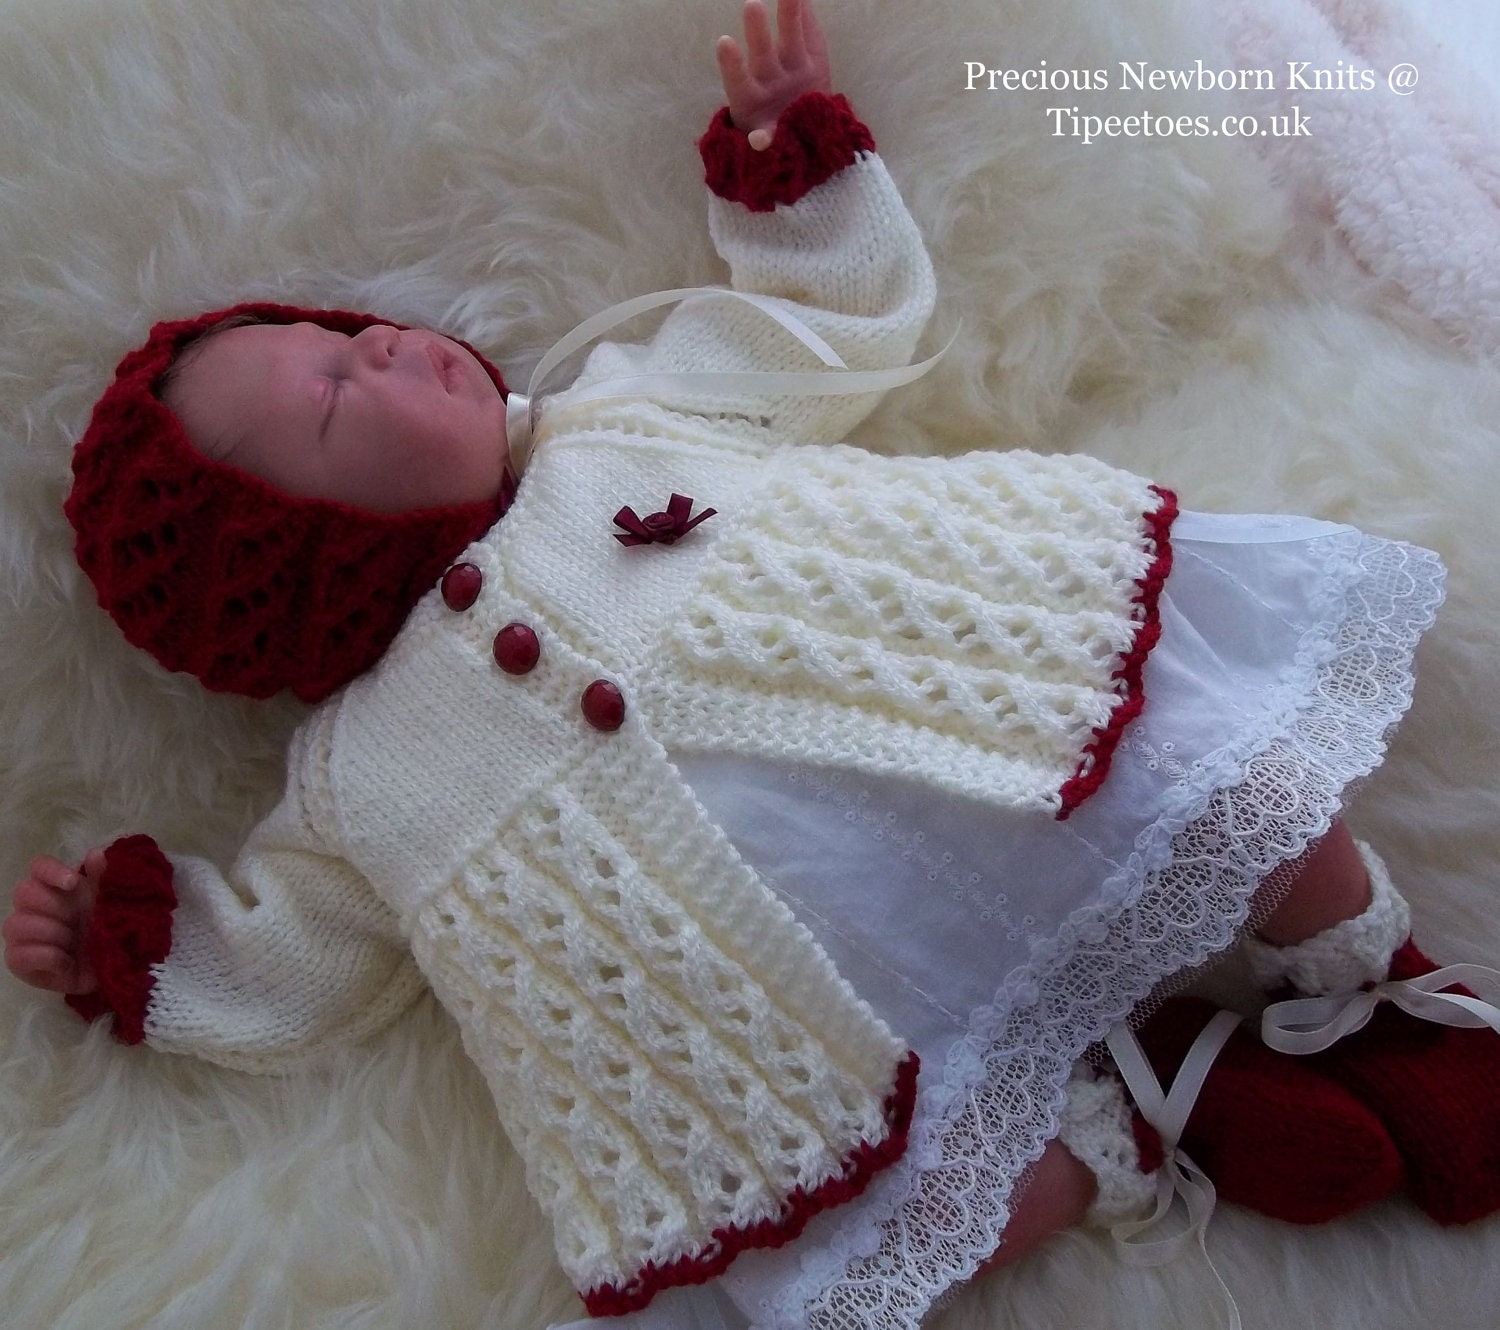 Knitting Sweater Design For Baby Girl : Baby Knitting Pattern Baby Girls or Reborn Dolls Sweater Set